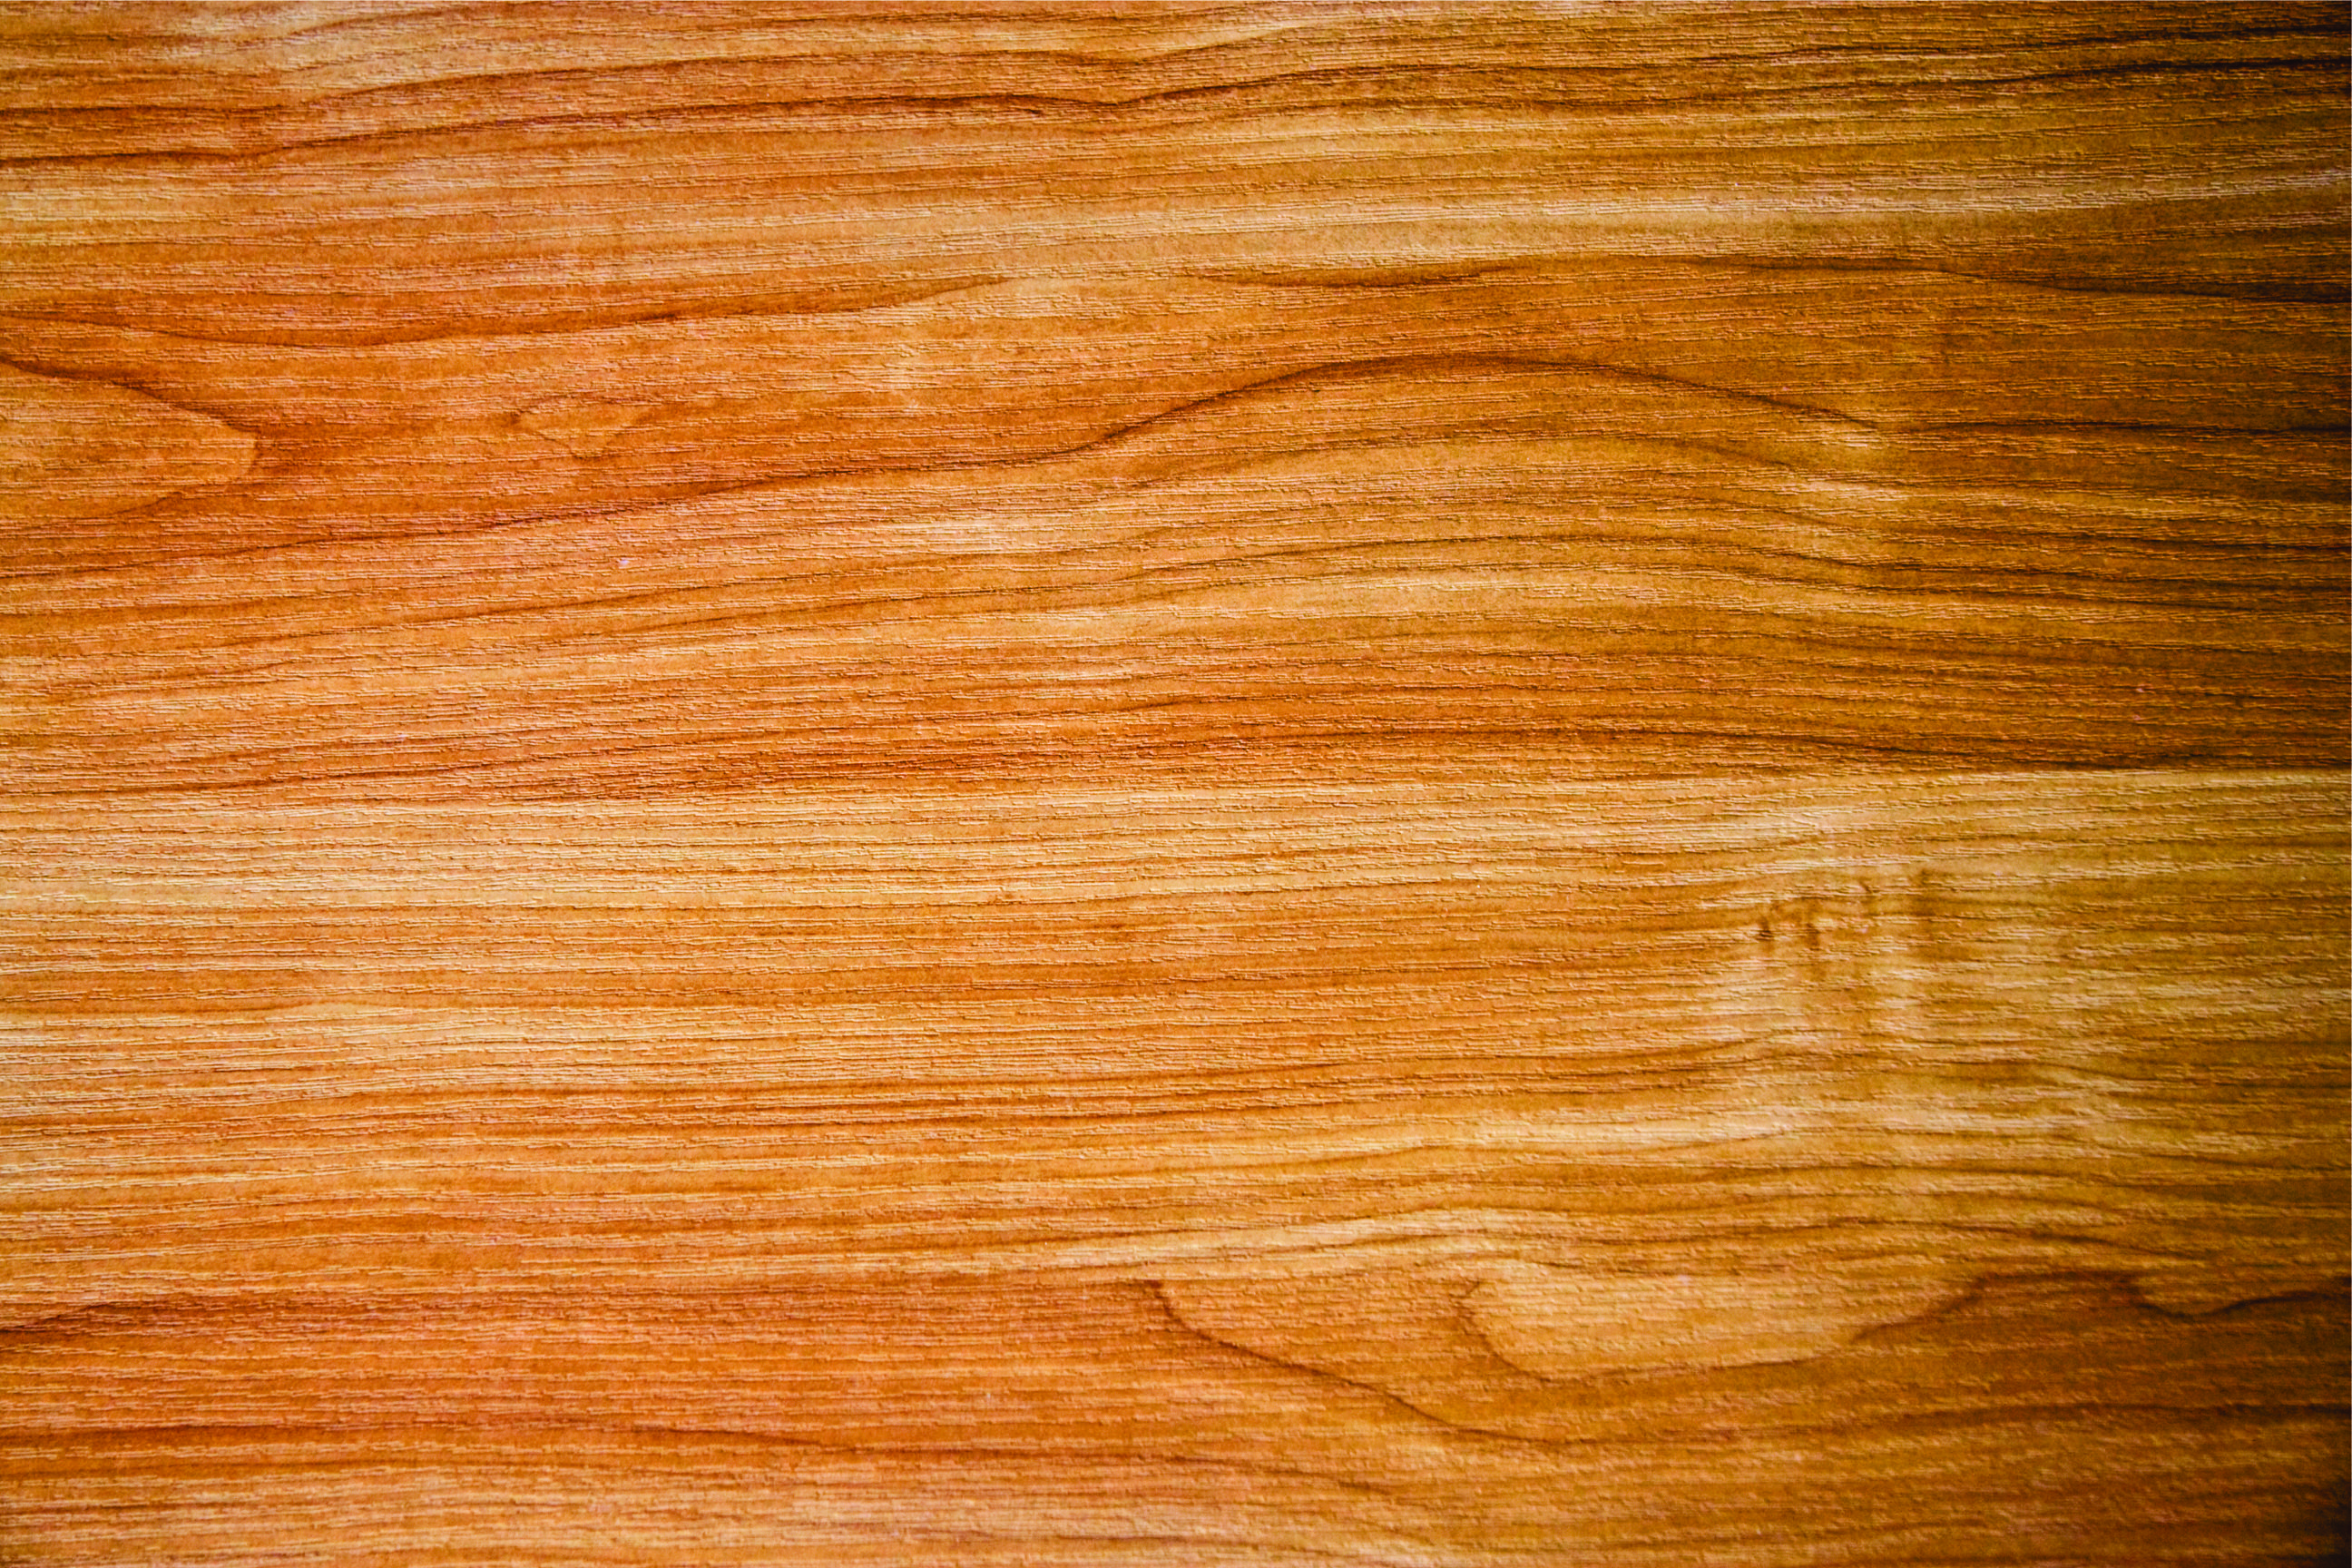 wood table background hd